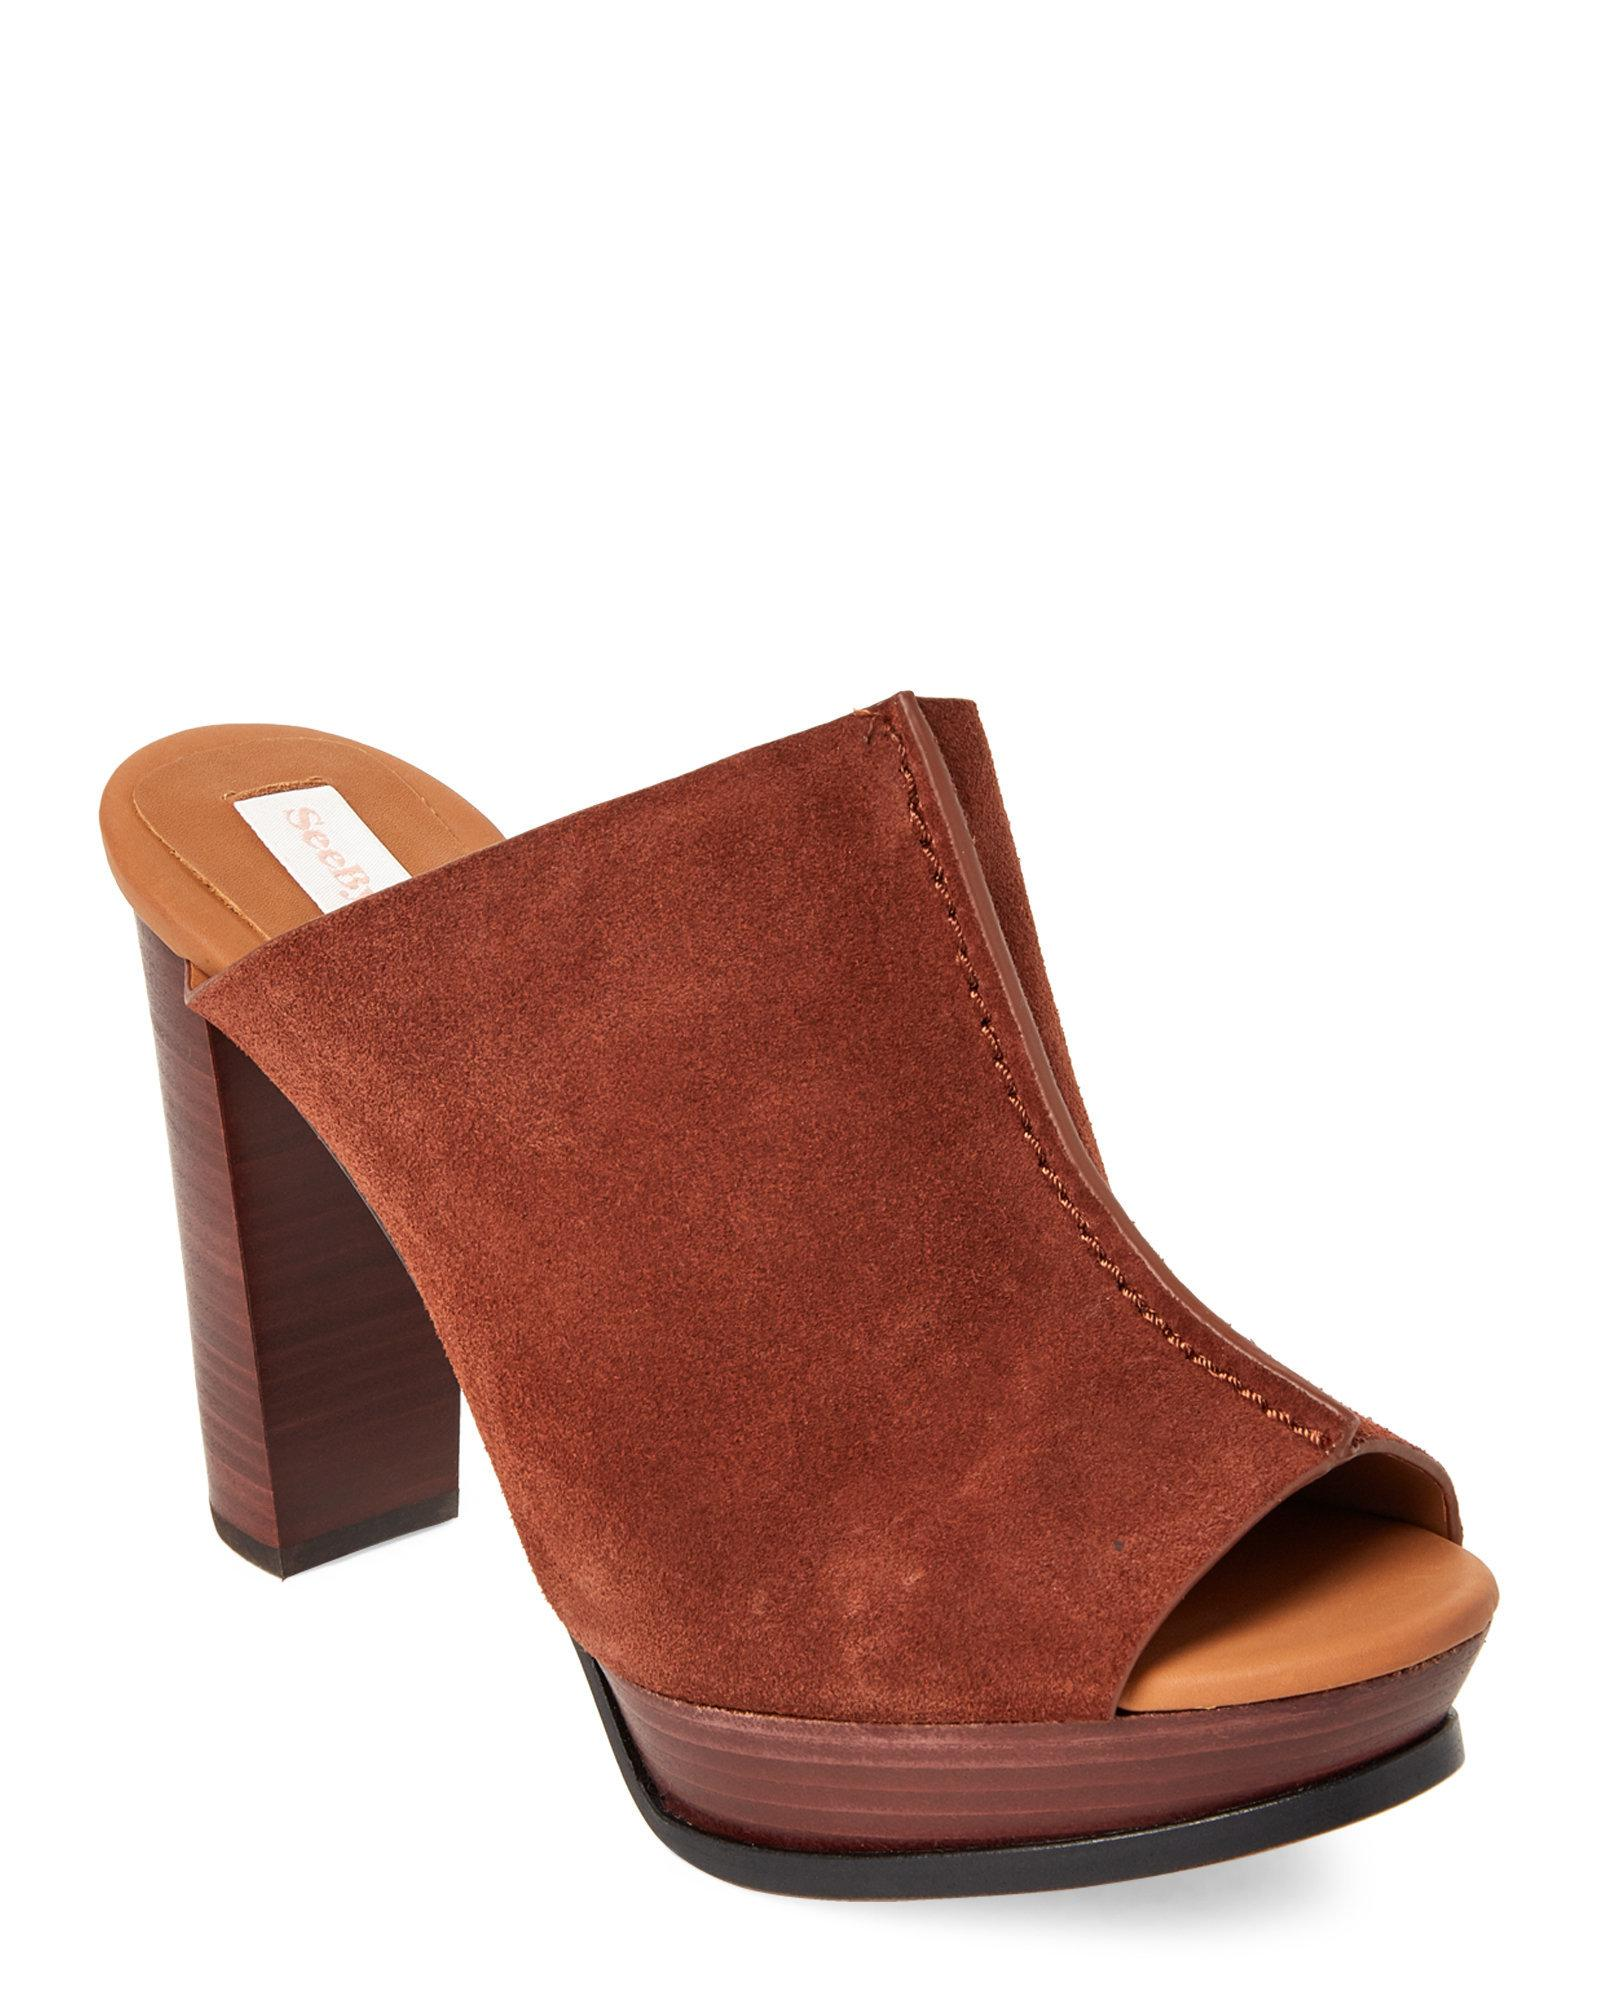 70f7bad15f9e50 Lyst - See By Chloé Brown Split Seam Platform Mules in Brown